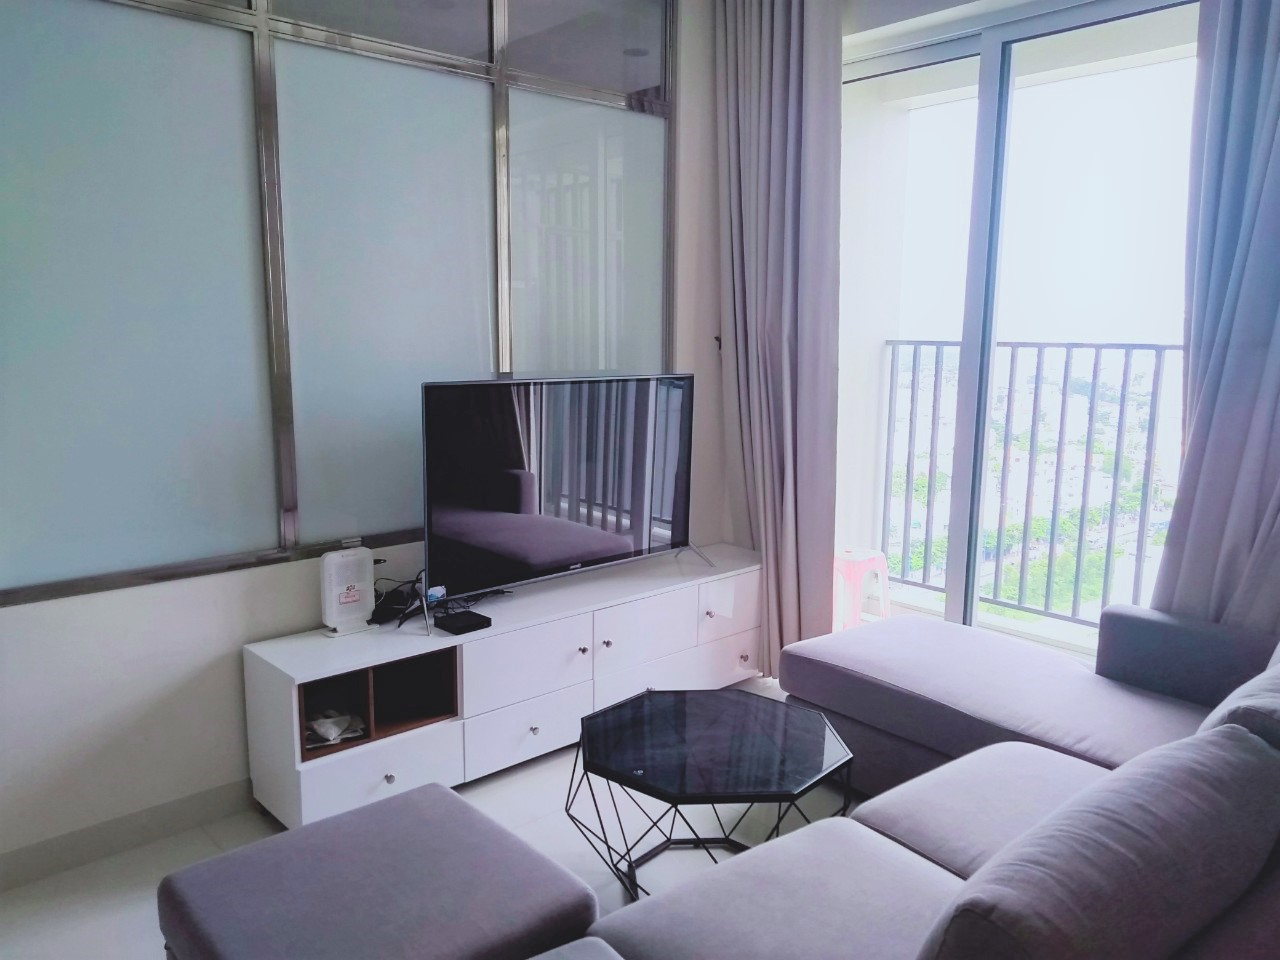 Apartment for rent D221171 (6)